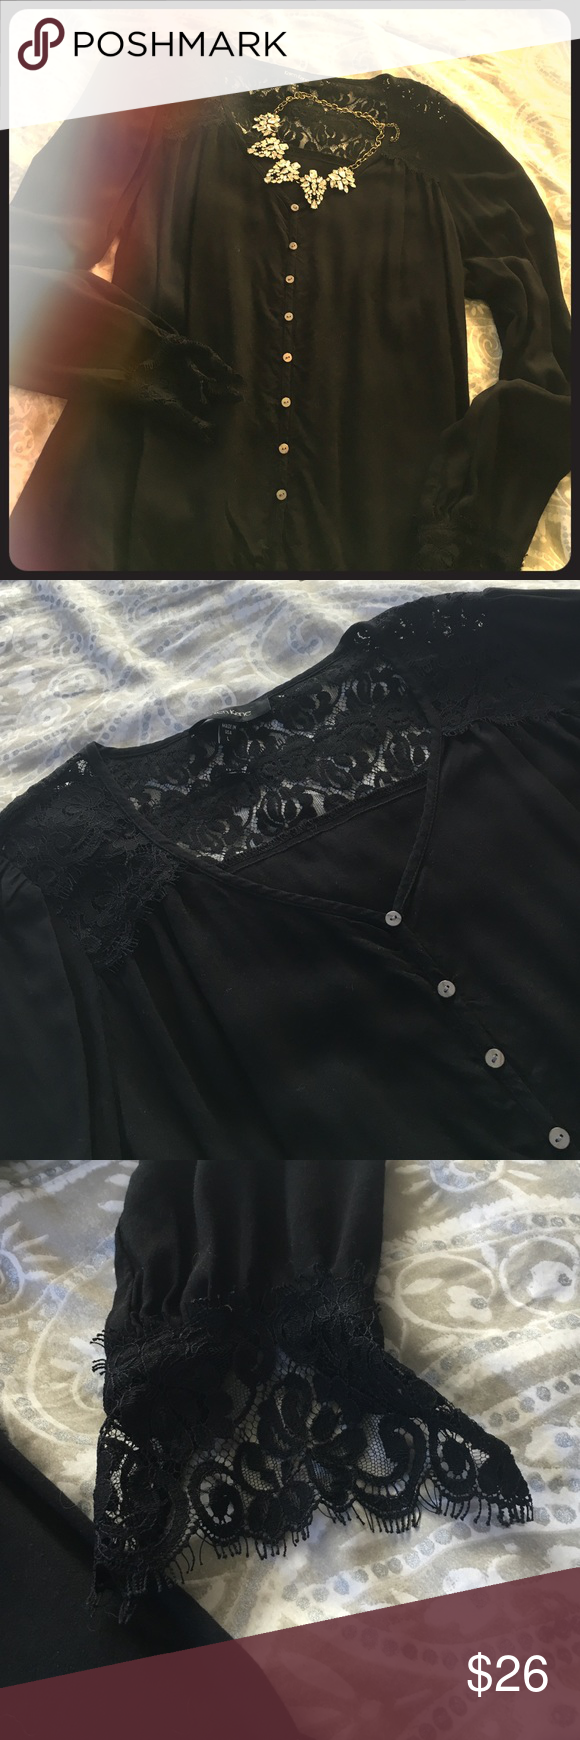 ⚡️Flash Sale! ⚡️Black lace Karen Kane blouse Sz. large, runs small! Super cute lace detail on neckline and wrists! Karen Kane Tops Blouses